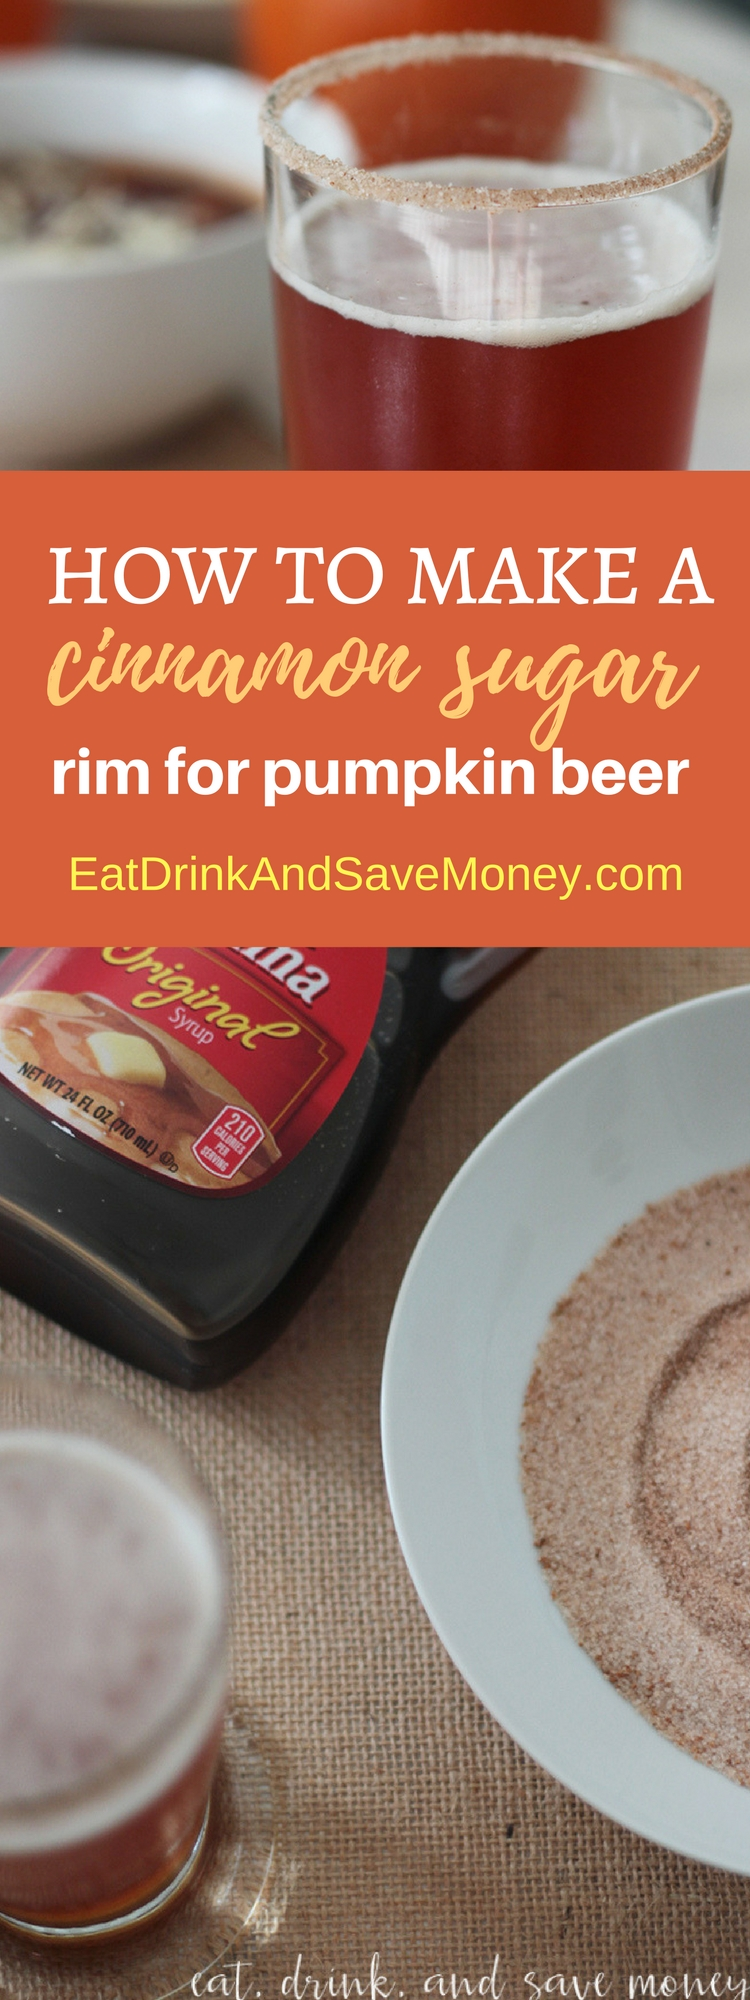 How to make a cinnamon sugar rim for pumpkin beer. Fall recipe. Fall drinks. Halloween drinks.